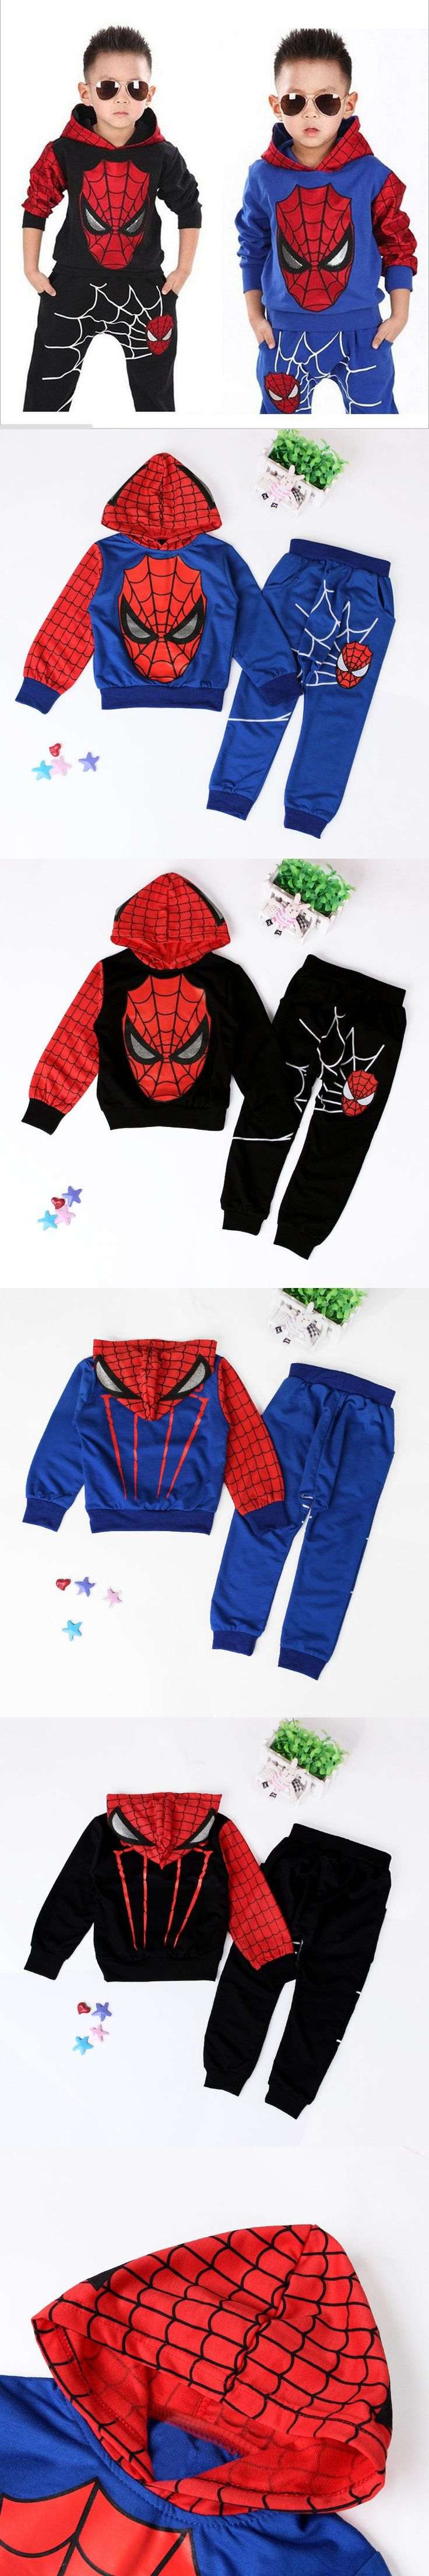 Spiderman Children Boys Sport Suit 2-6 Years Kids Clothing Set Spider Man Baby Boys Clothes Set Spring Summer Tracksuits For Boy